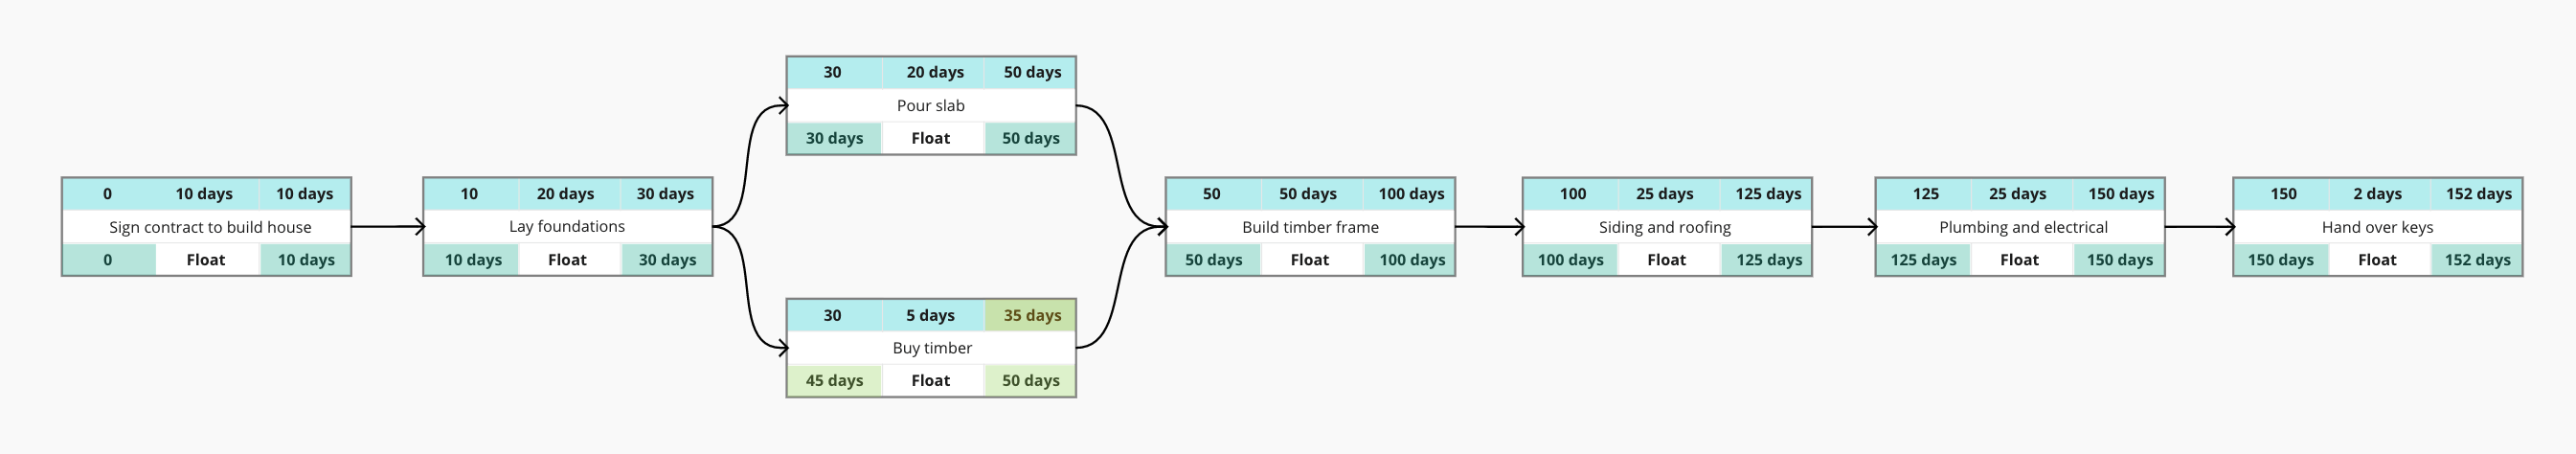 Critical path method step 7: Add late finish and late start to all tasks